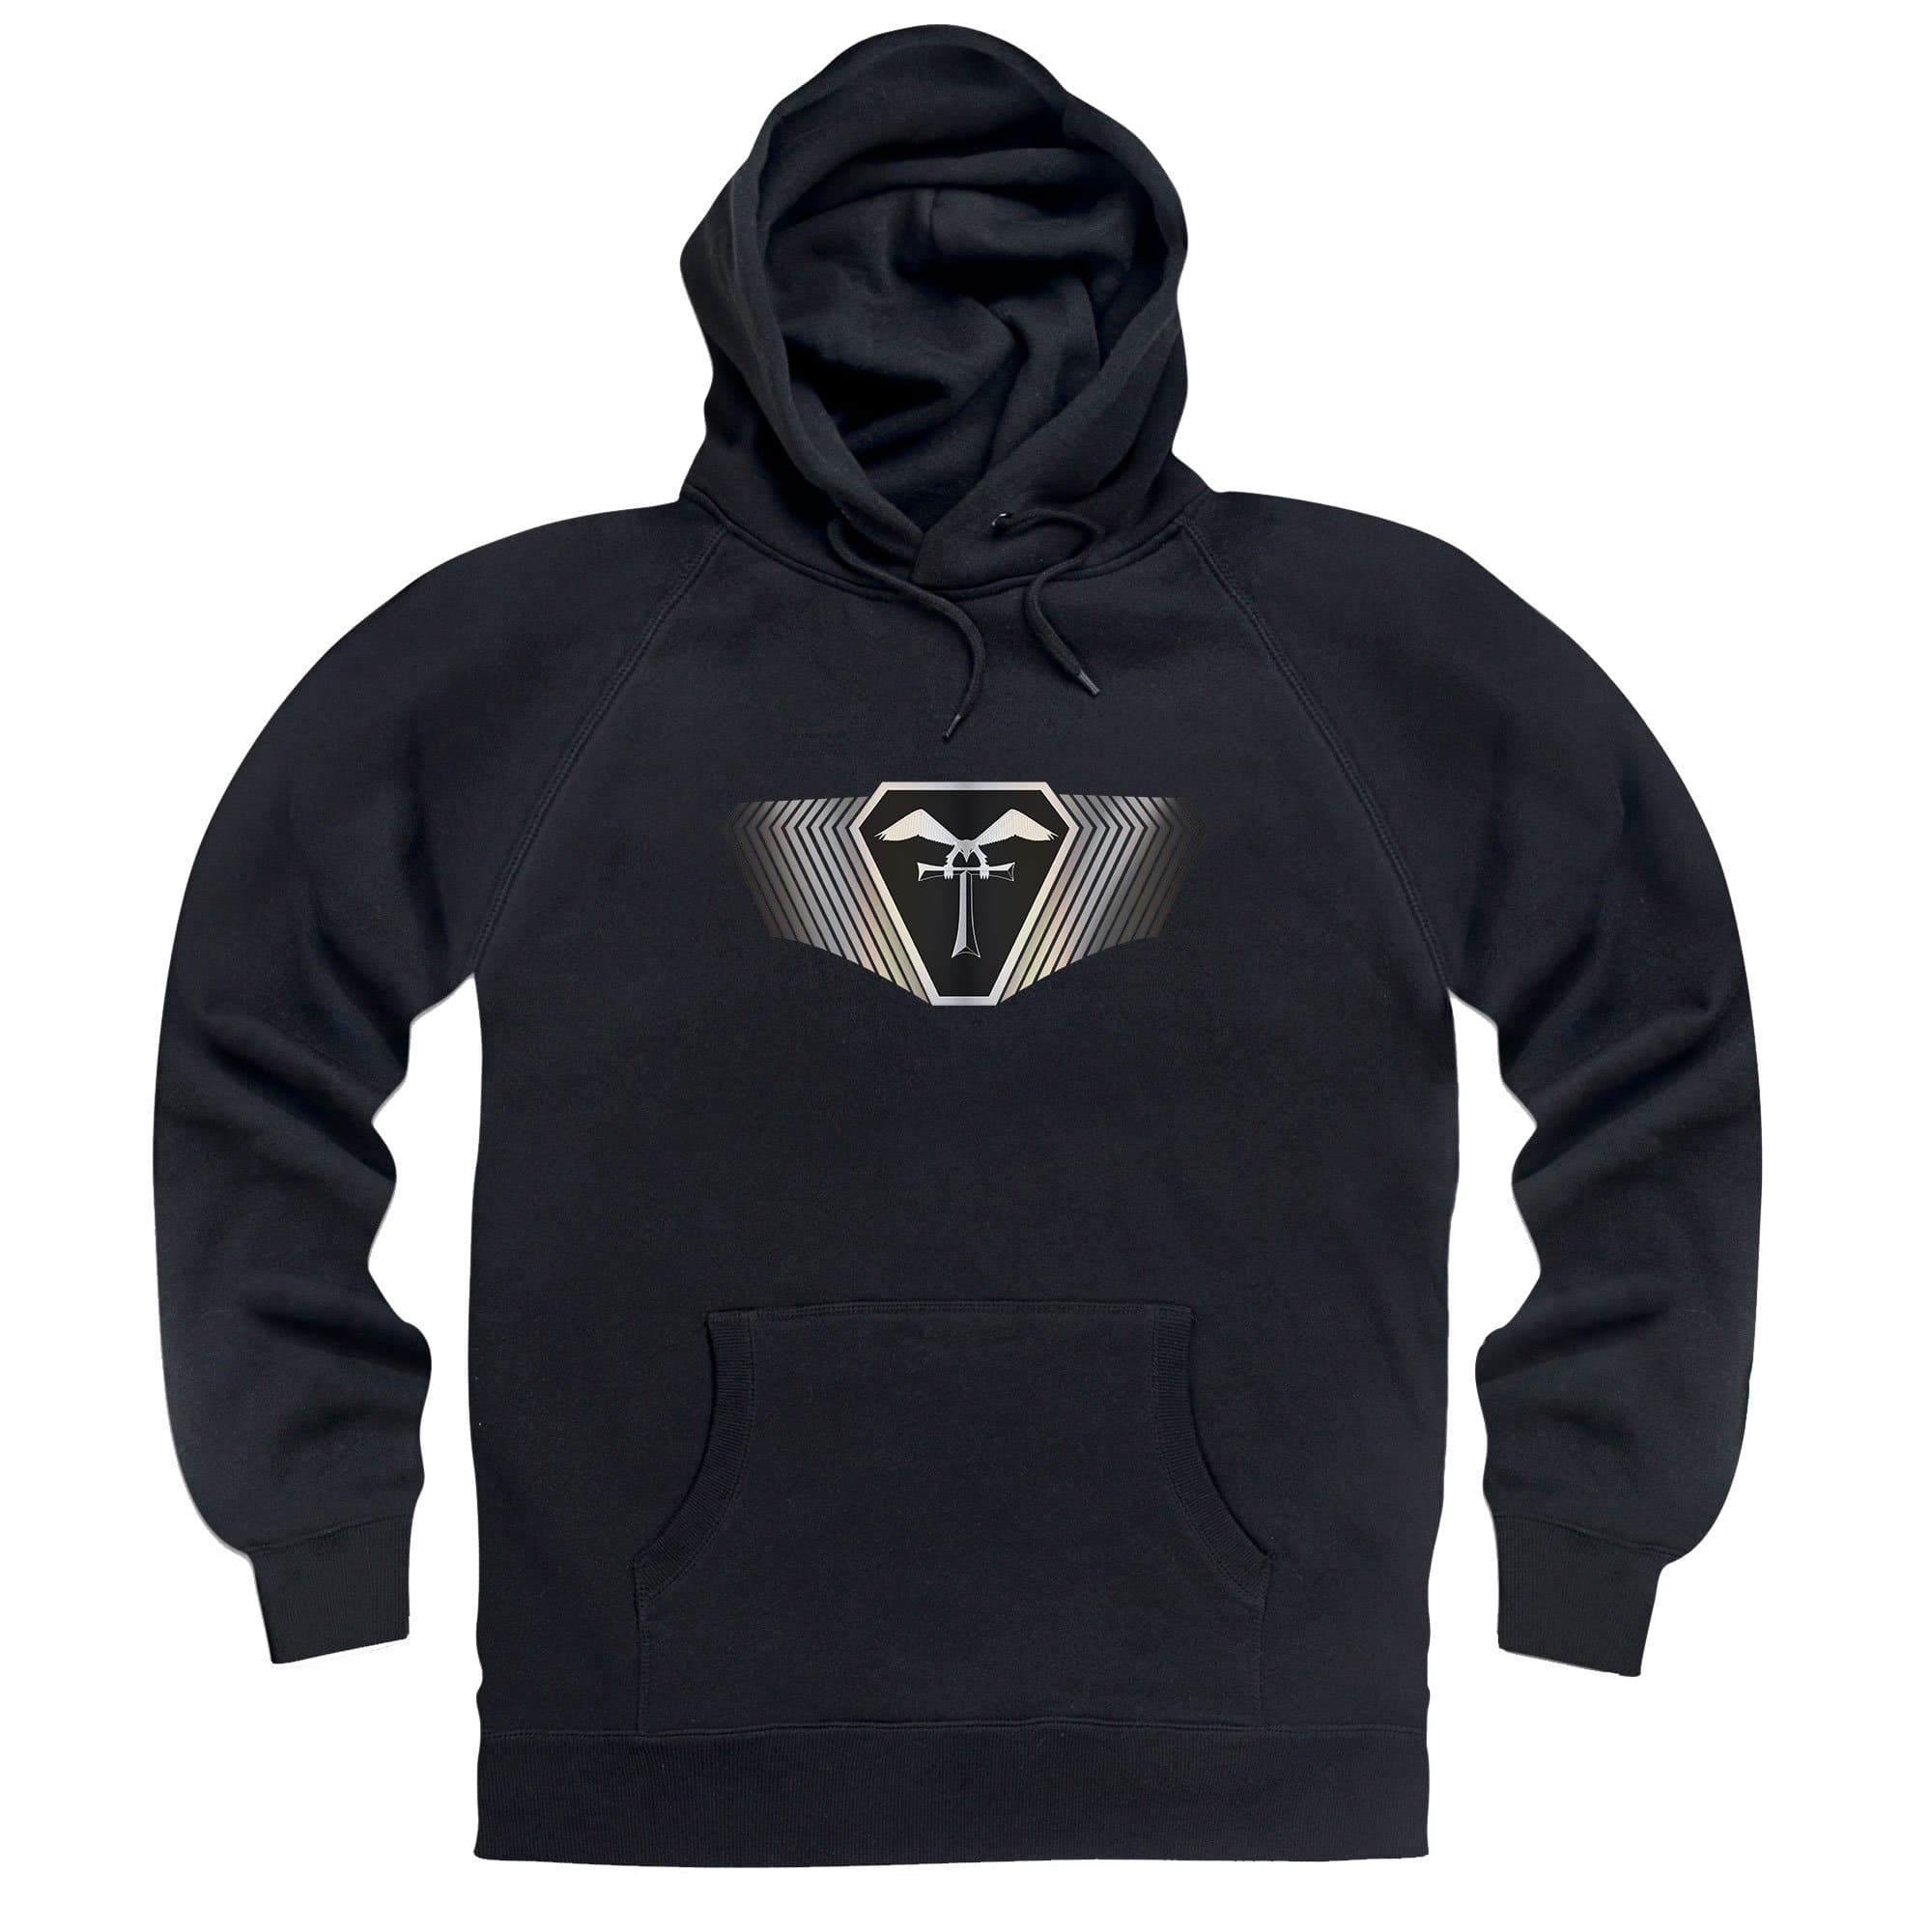 Terrahawks Silver Emblem Hoodie [Official & Exclusive]